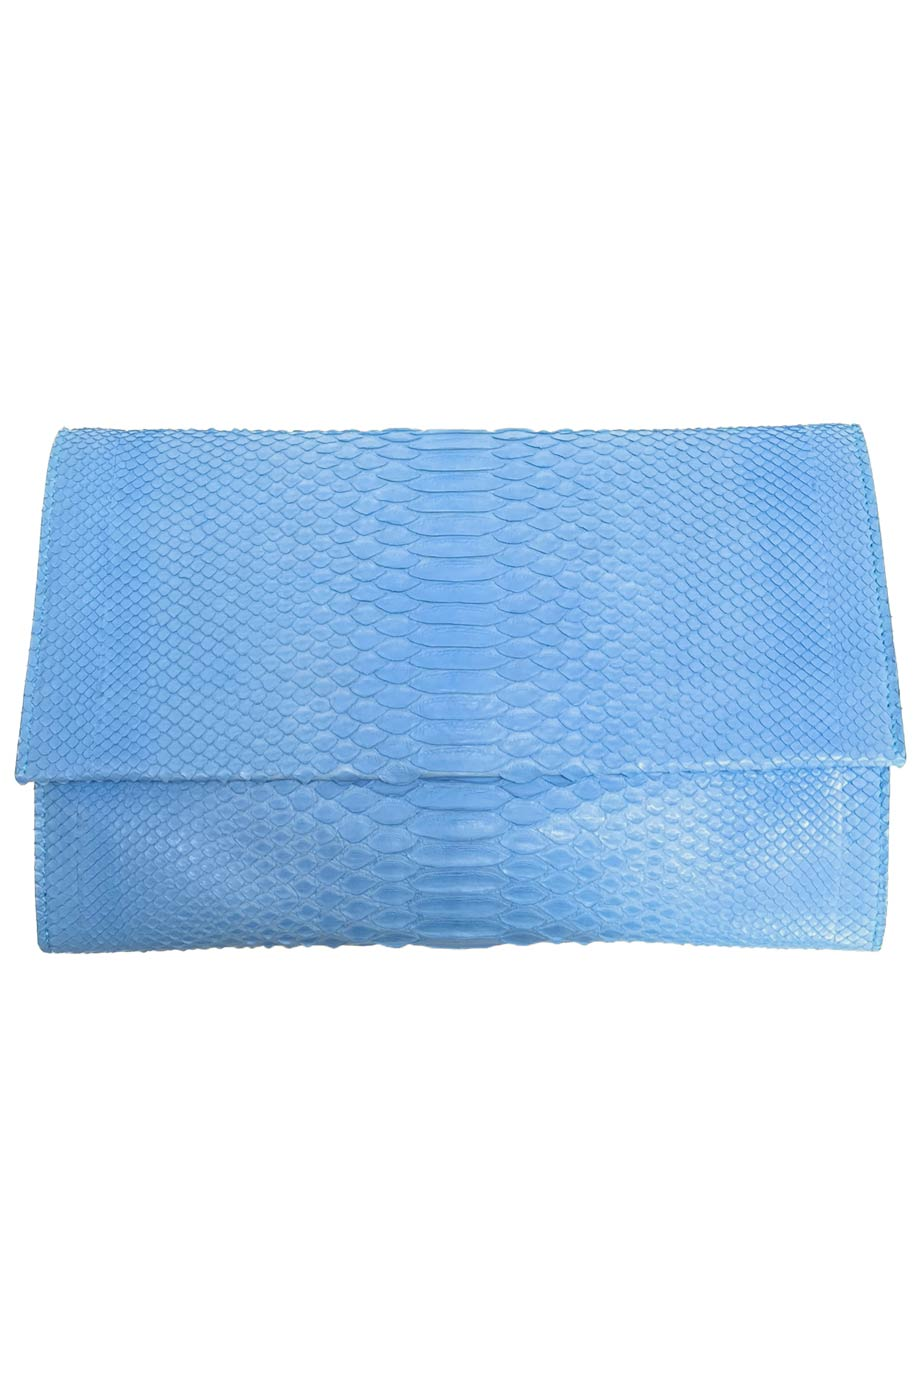 Jonathan Blake Solid Light Blue Python Flap Clutch Bag-Style Therapy